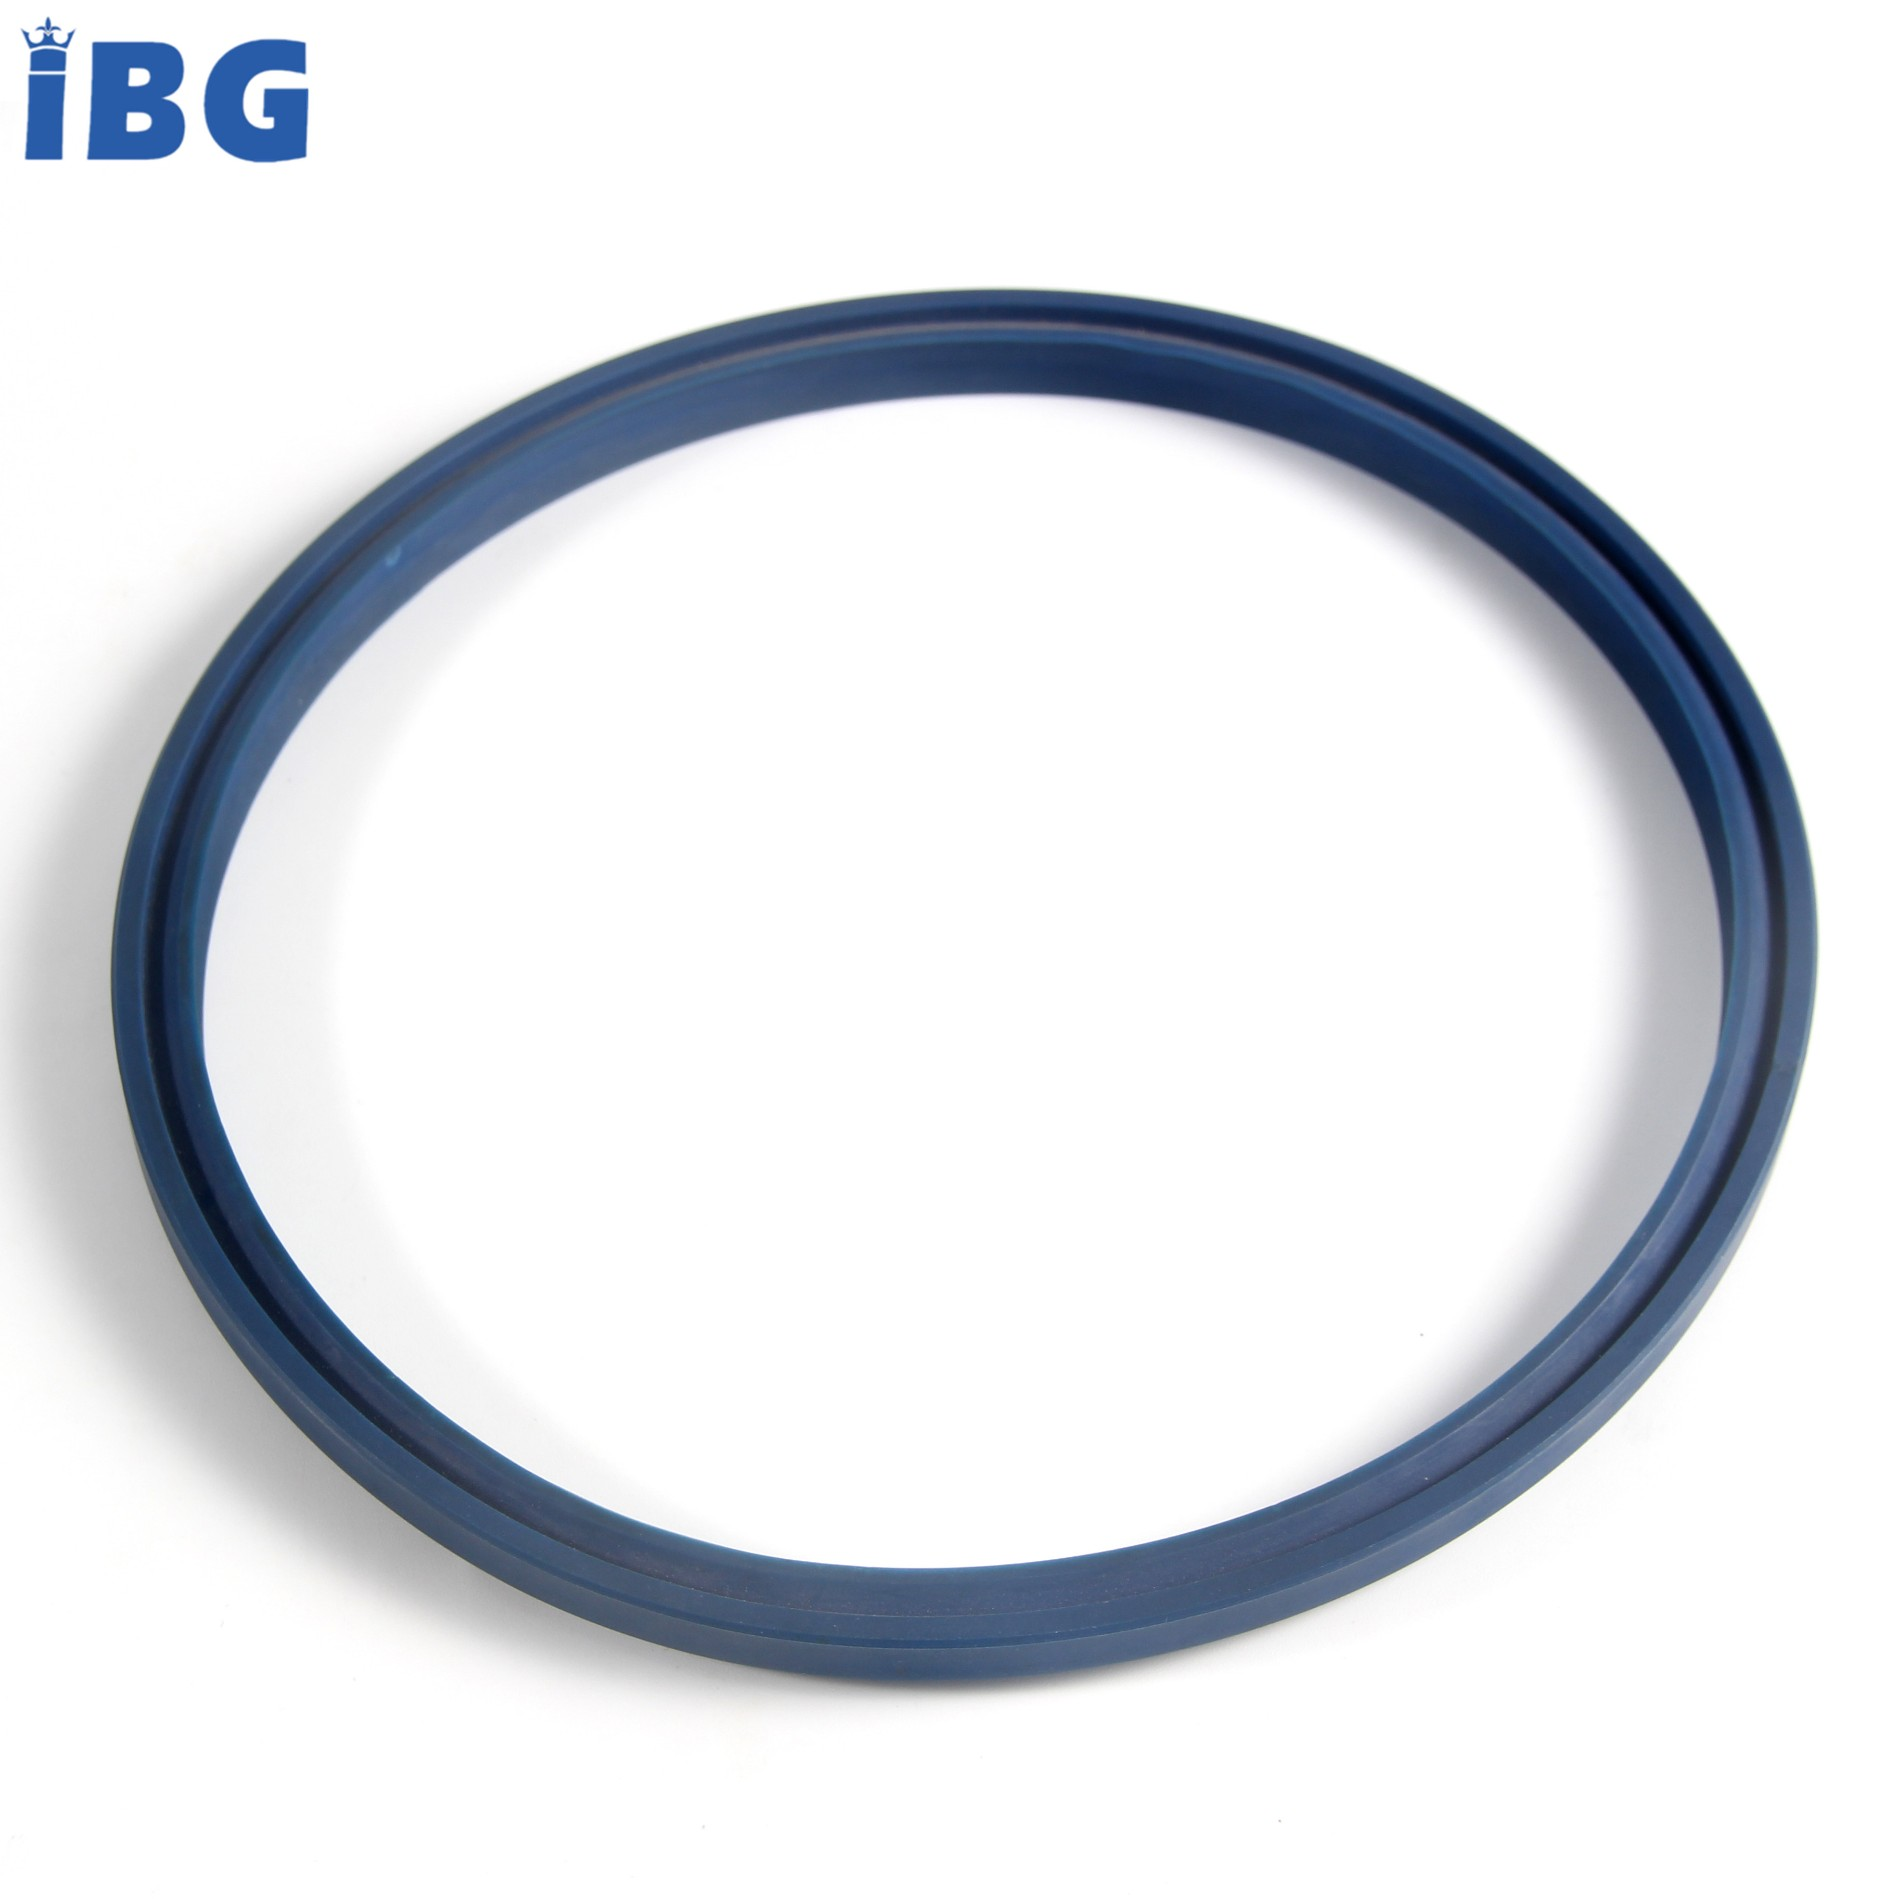 Custom Size Reliable Quality Chemical Resistant Black Viton Y-Ring